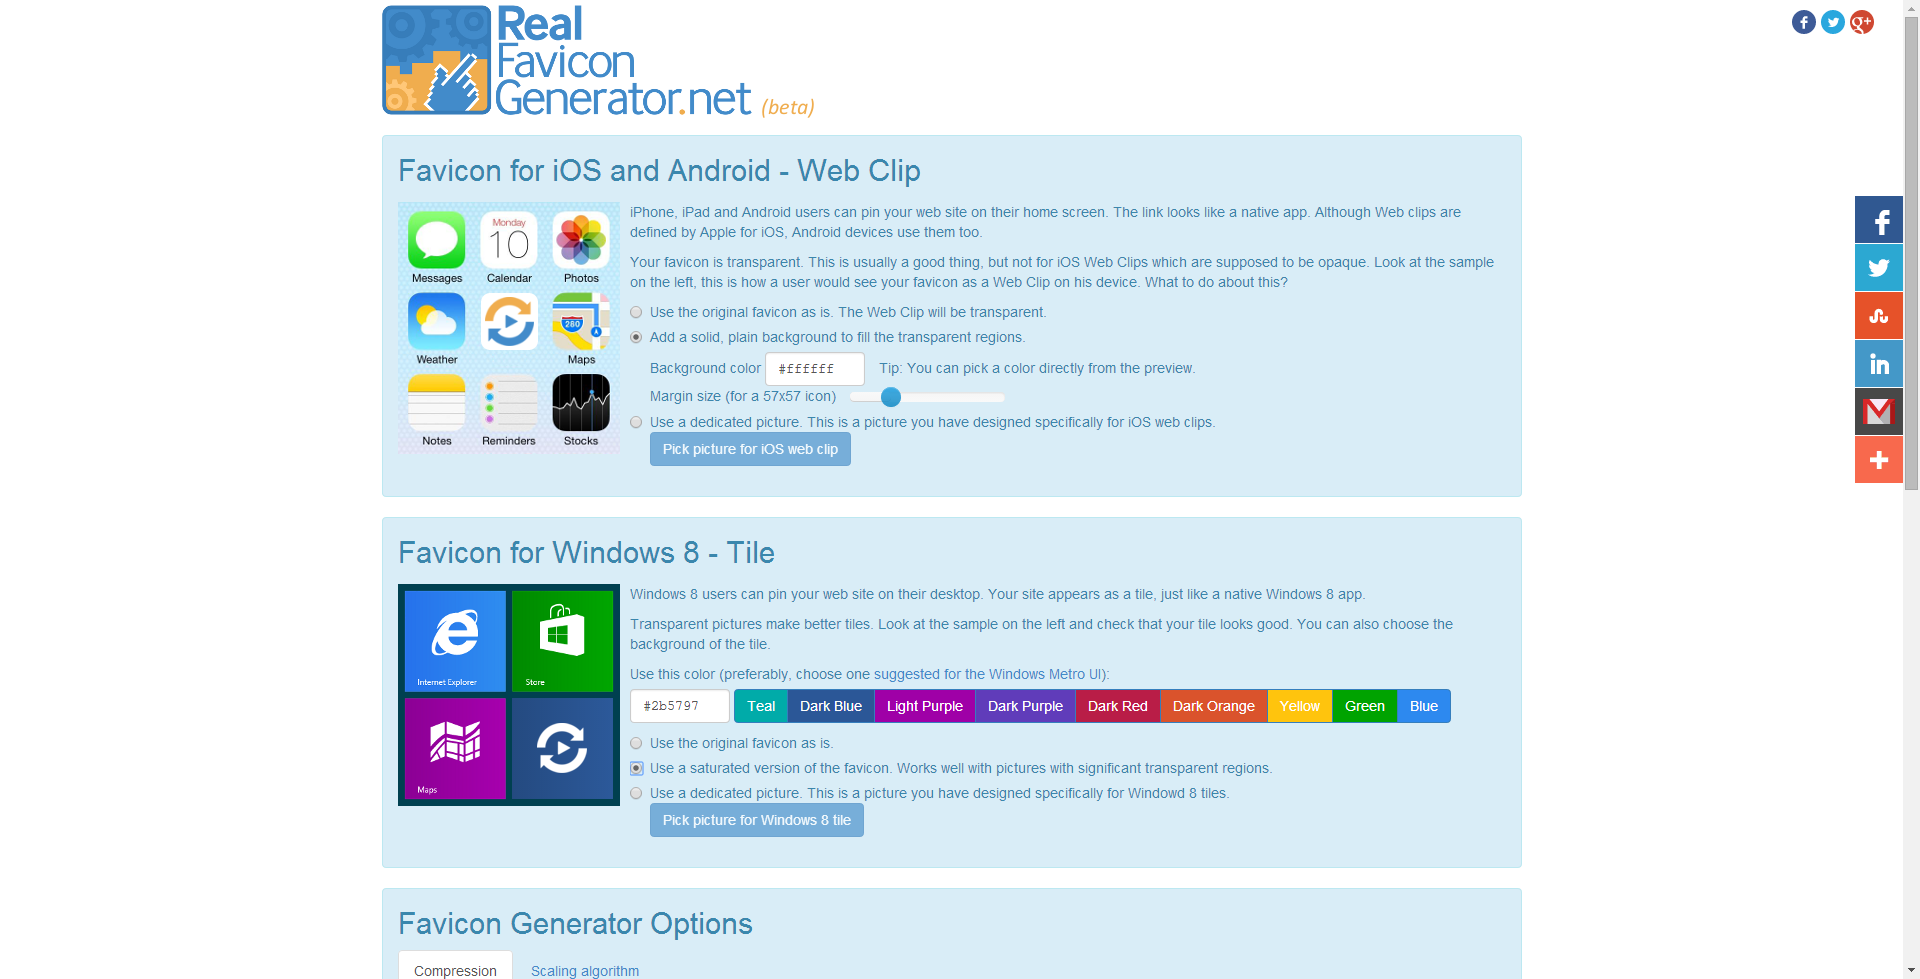 """Once you hit the Generate Favicon button, you are redirected to <a href=""""http://realfavicongenerator.net/"""">RealFaviconGenerator</a>, where you can design your favicon: adding a background to your iOS picture, using a saturated version of your master picture for Windows 8..."""